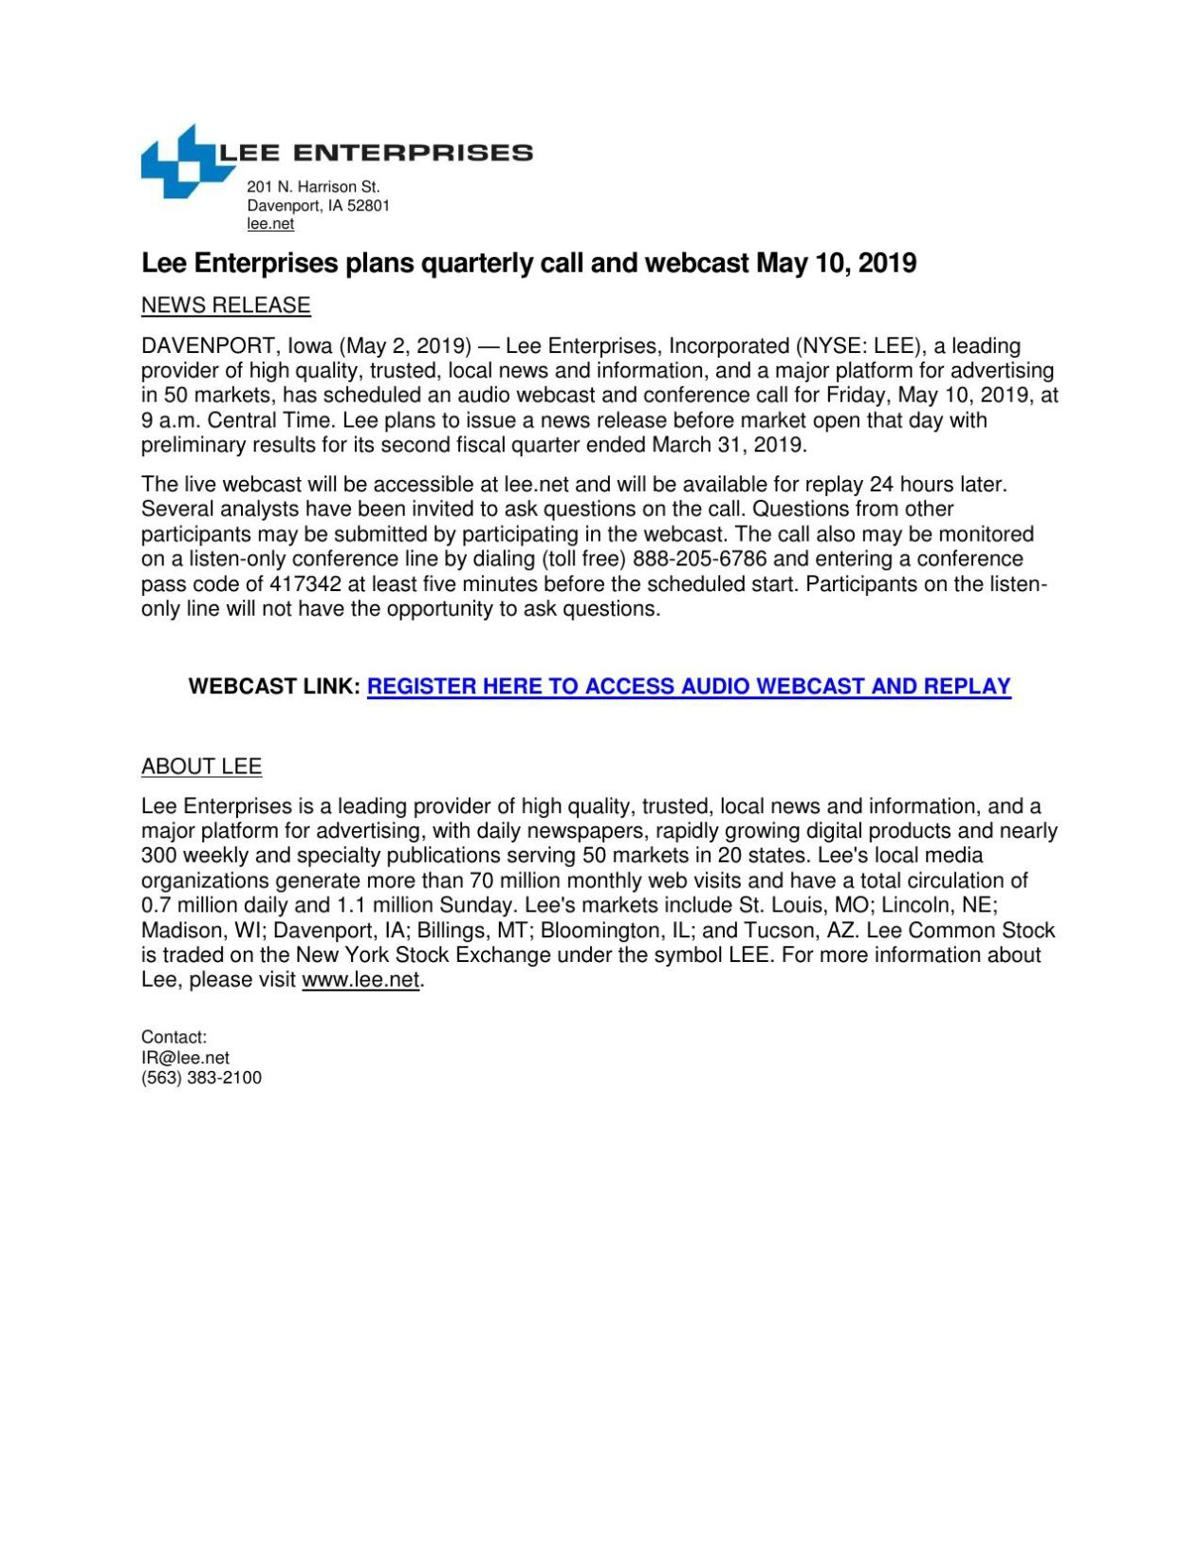 Lee Enterprises plans quarterly call and webcast May 10, 2019